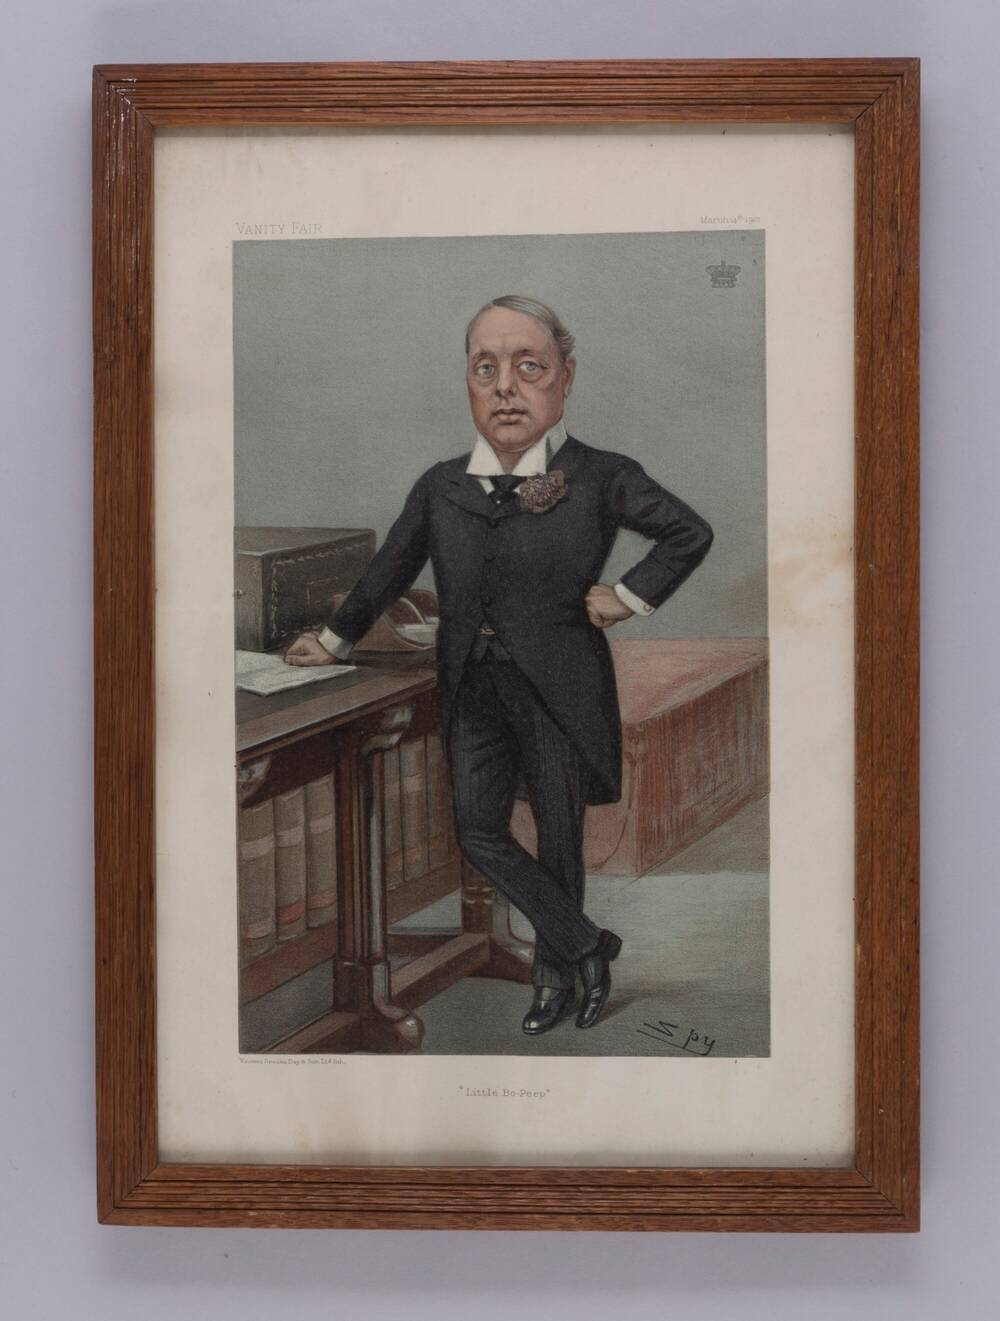 A coloured print in a wooden frame. It is of a man in a Victorian suit with a wing collar standing at a desk.